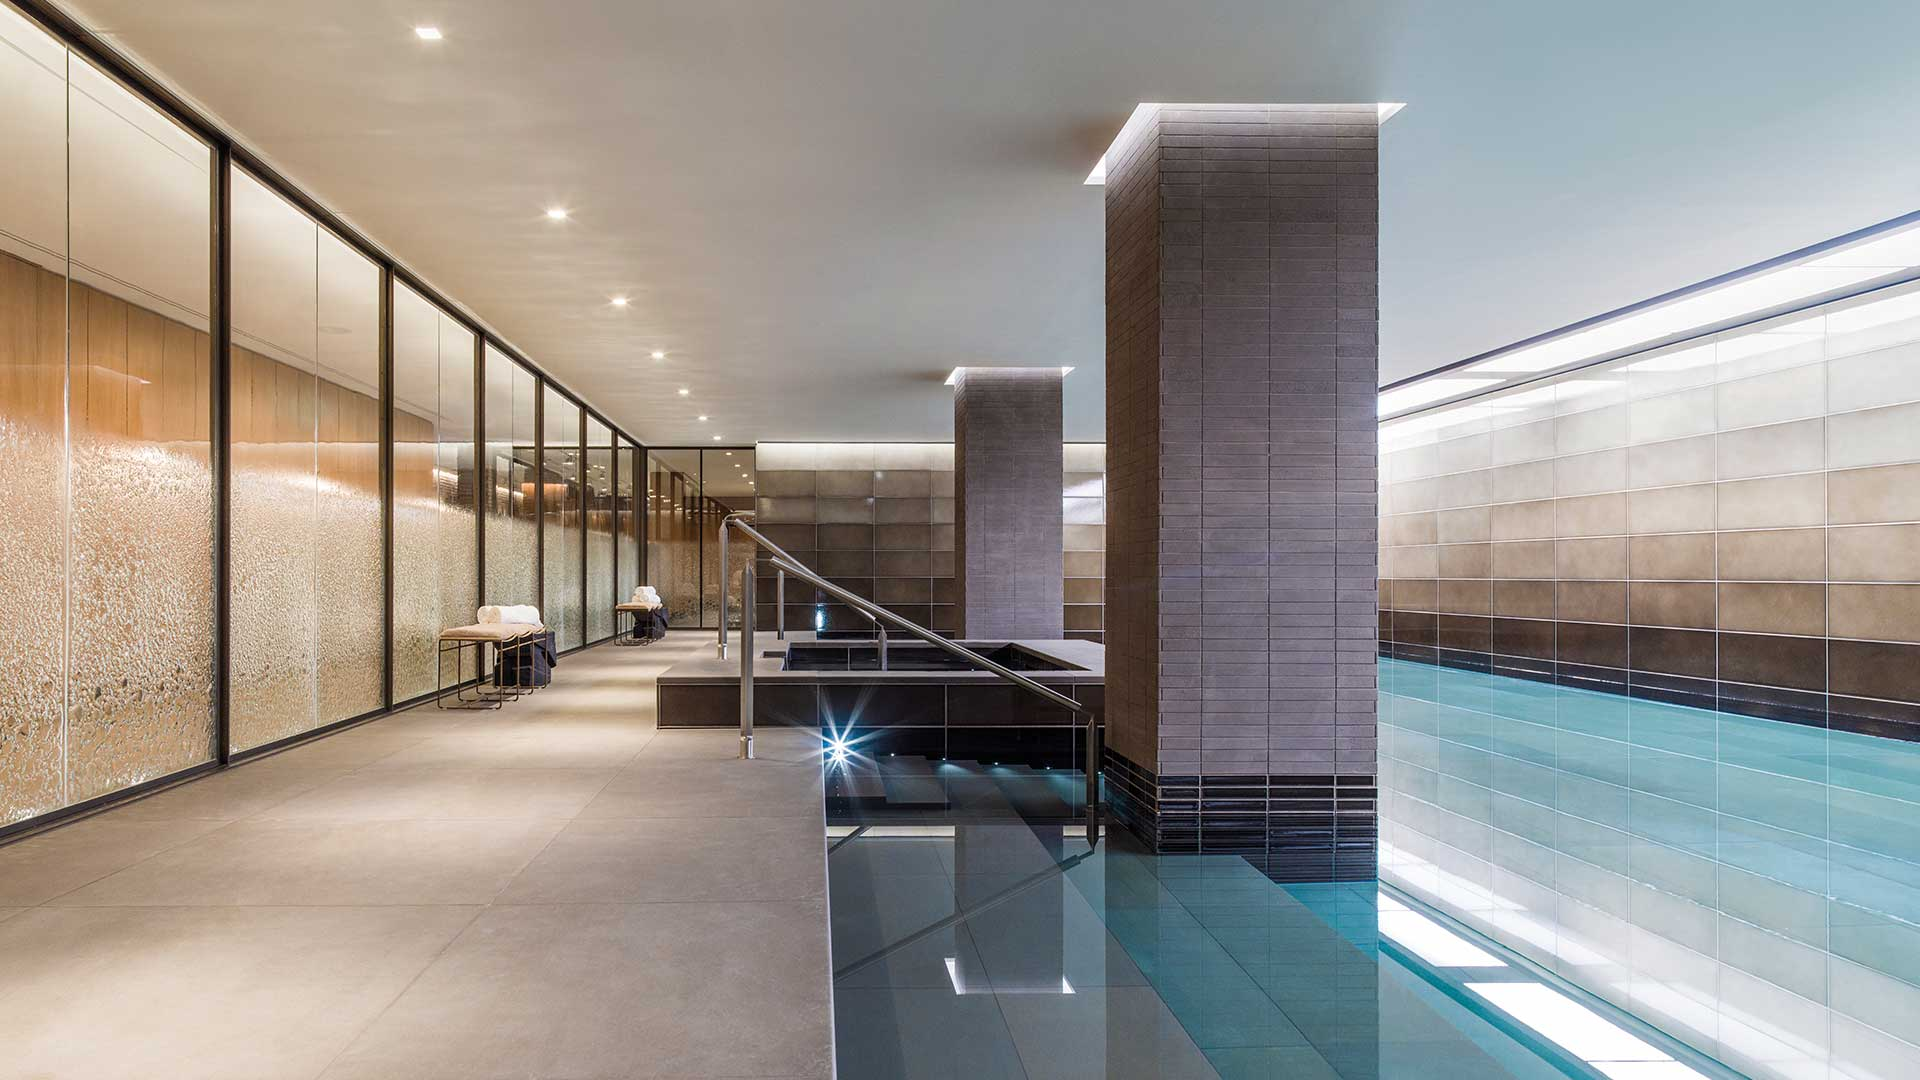 Architectural Lighting Design Swimming Pool Spa Luxury Kensington Apartments Holland Park Villas London Consultants Nulty